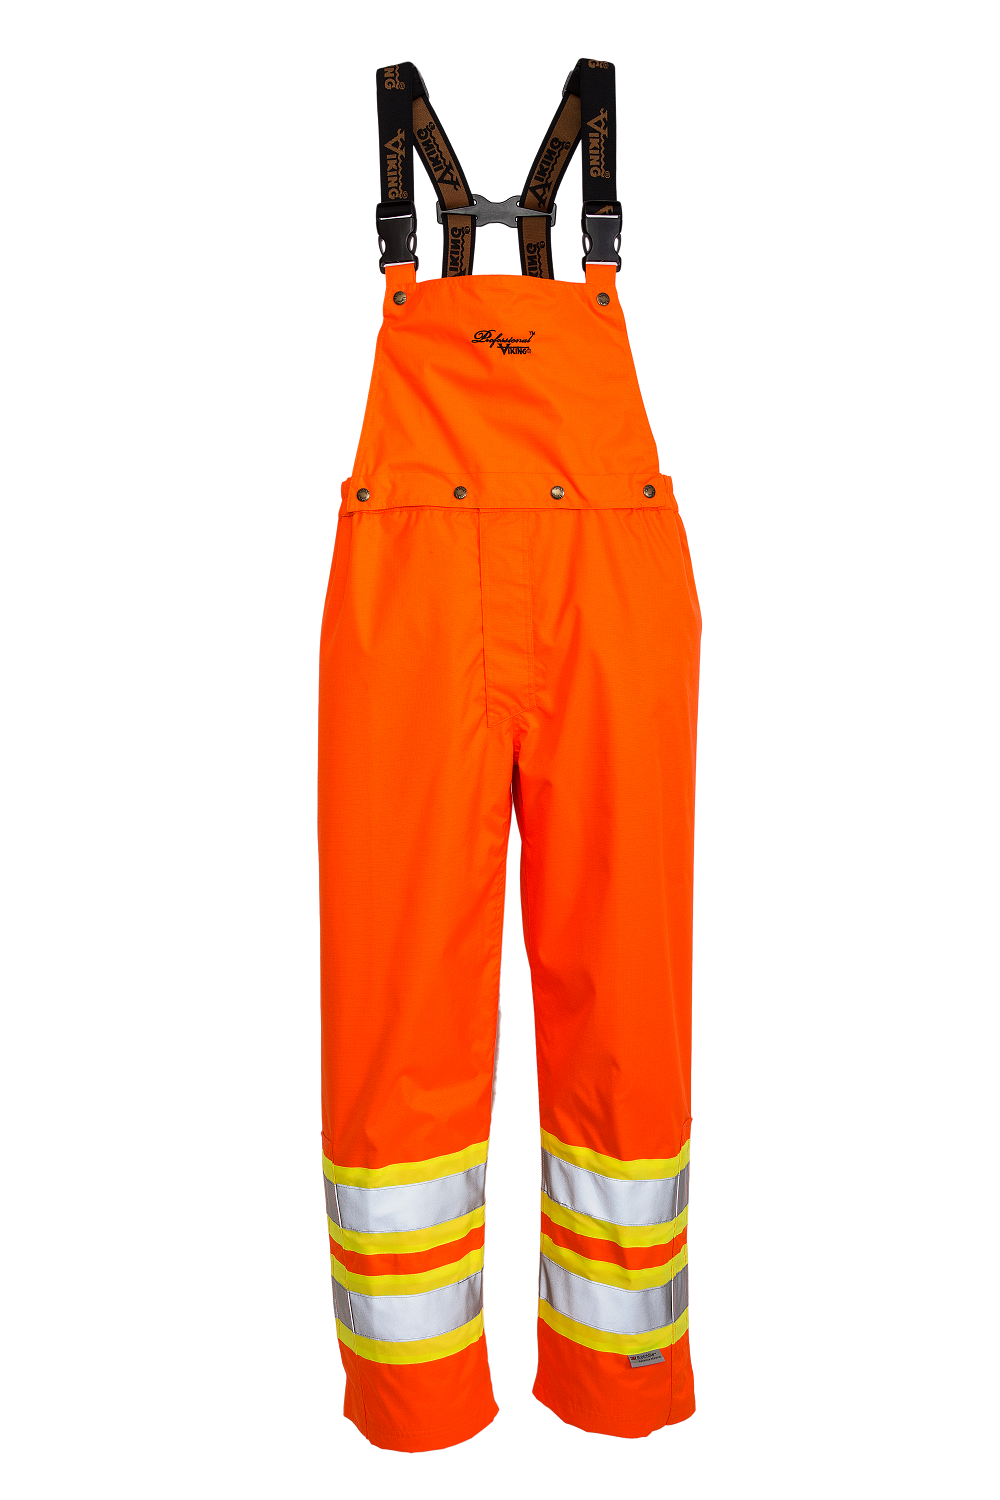 Viking Journeyman 300D Rain Pants